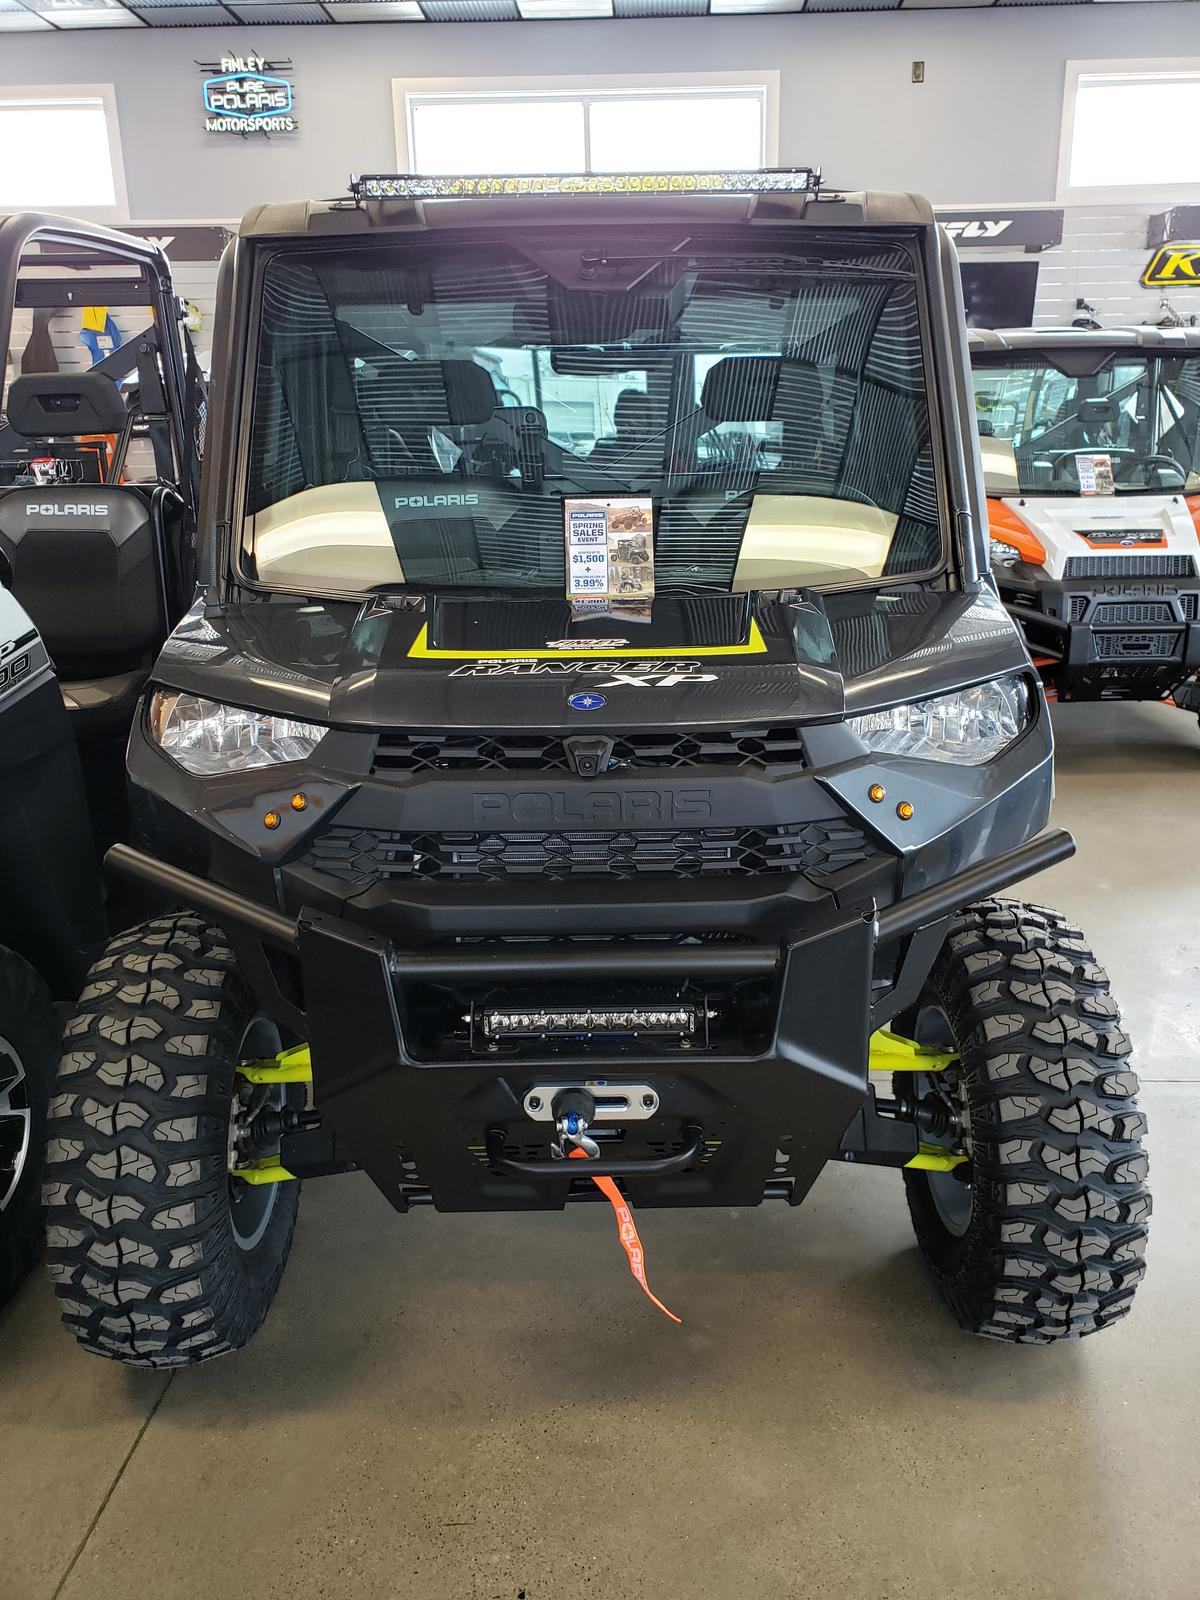 2019 Polaris Industries Ranger 1000 RC EPS